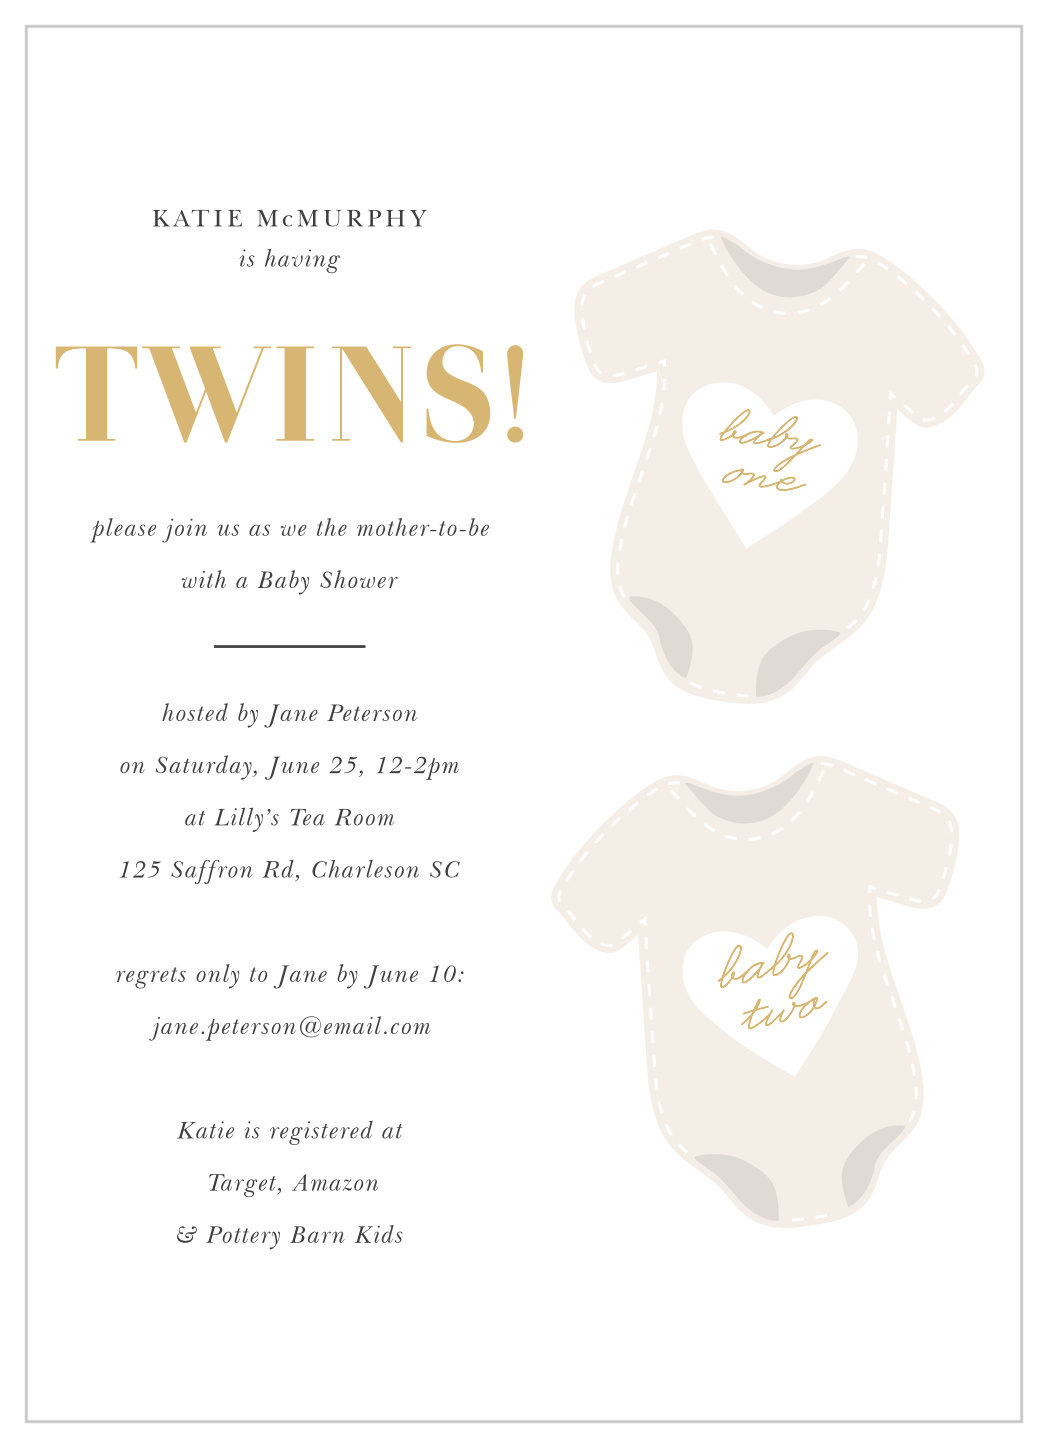 Baby Shower Invitation Wording For Twins